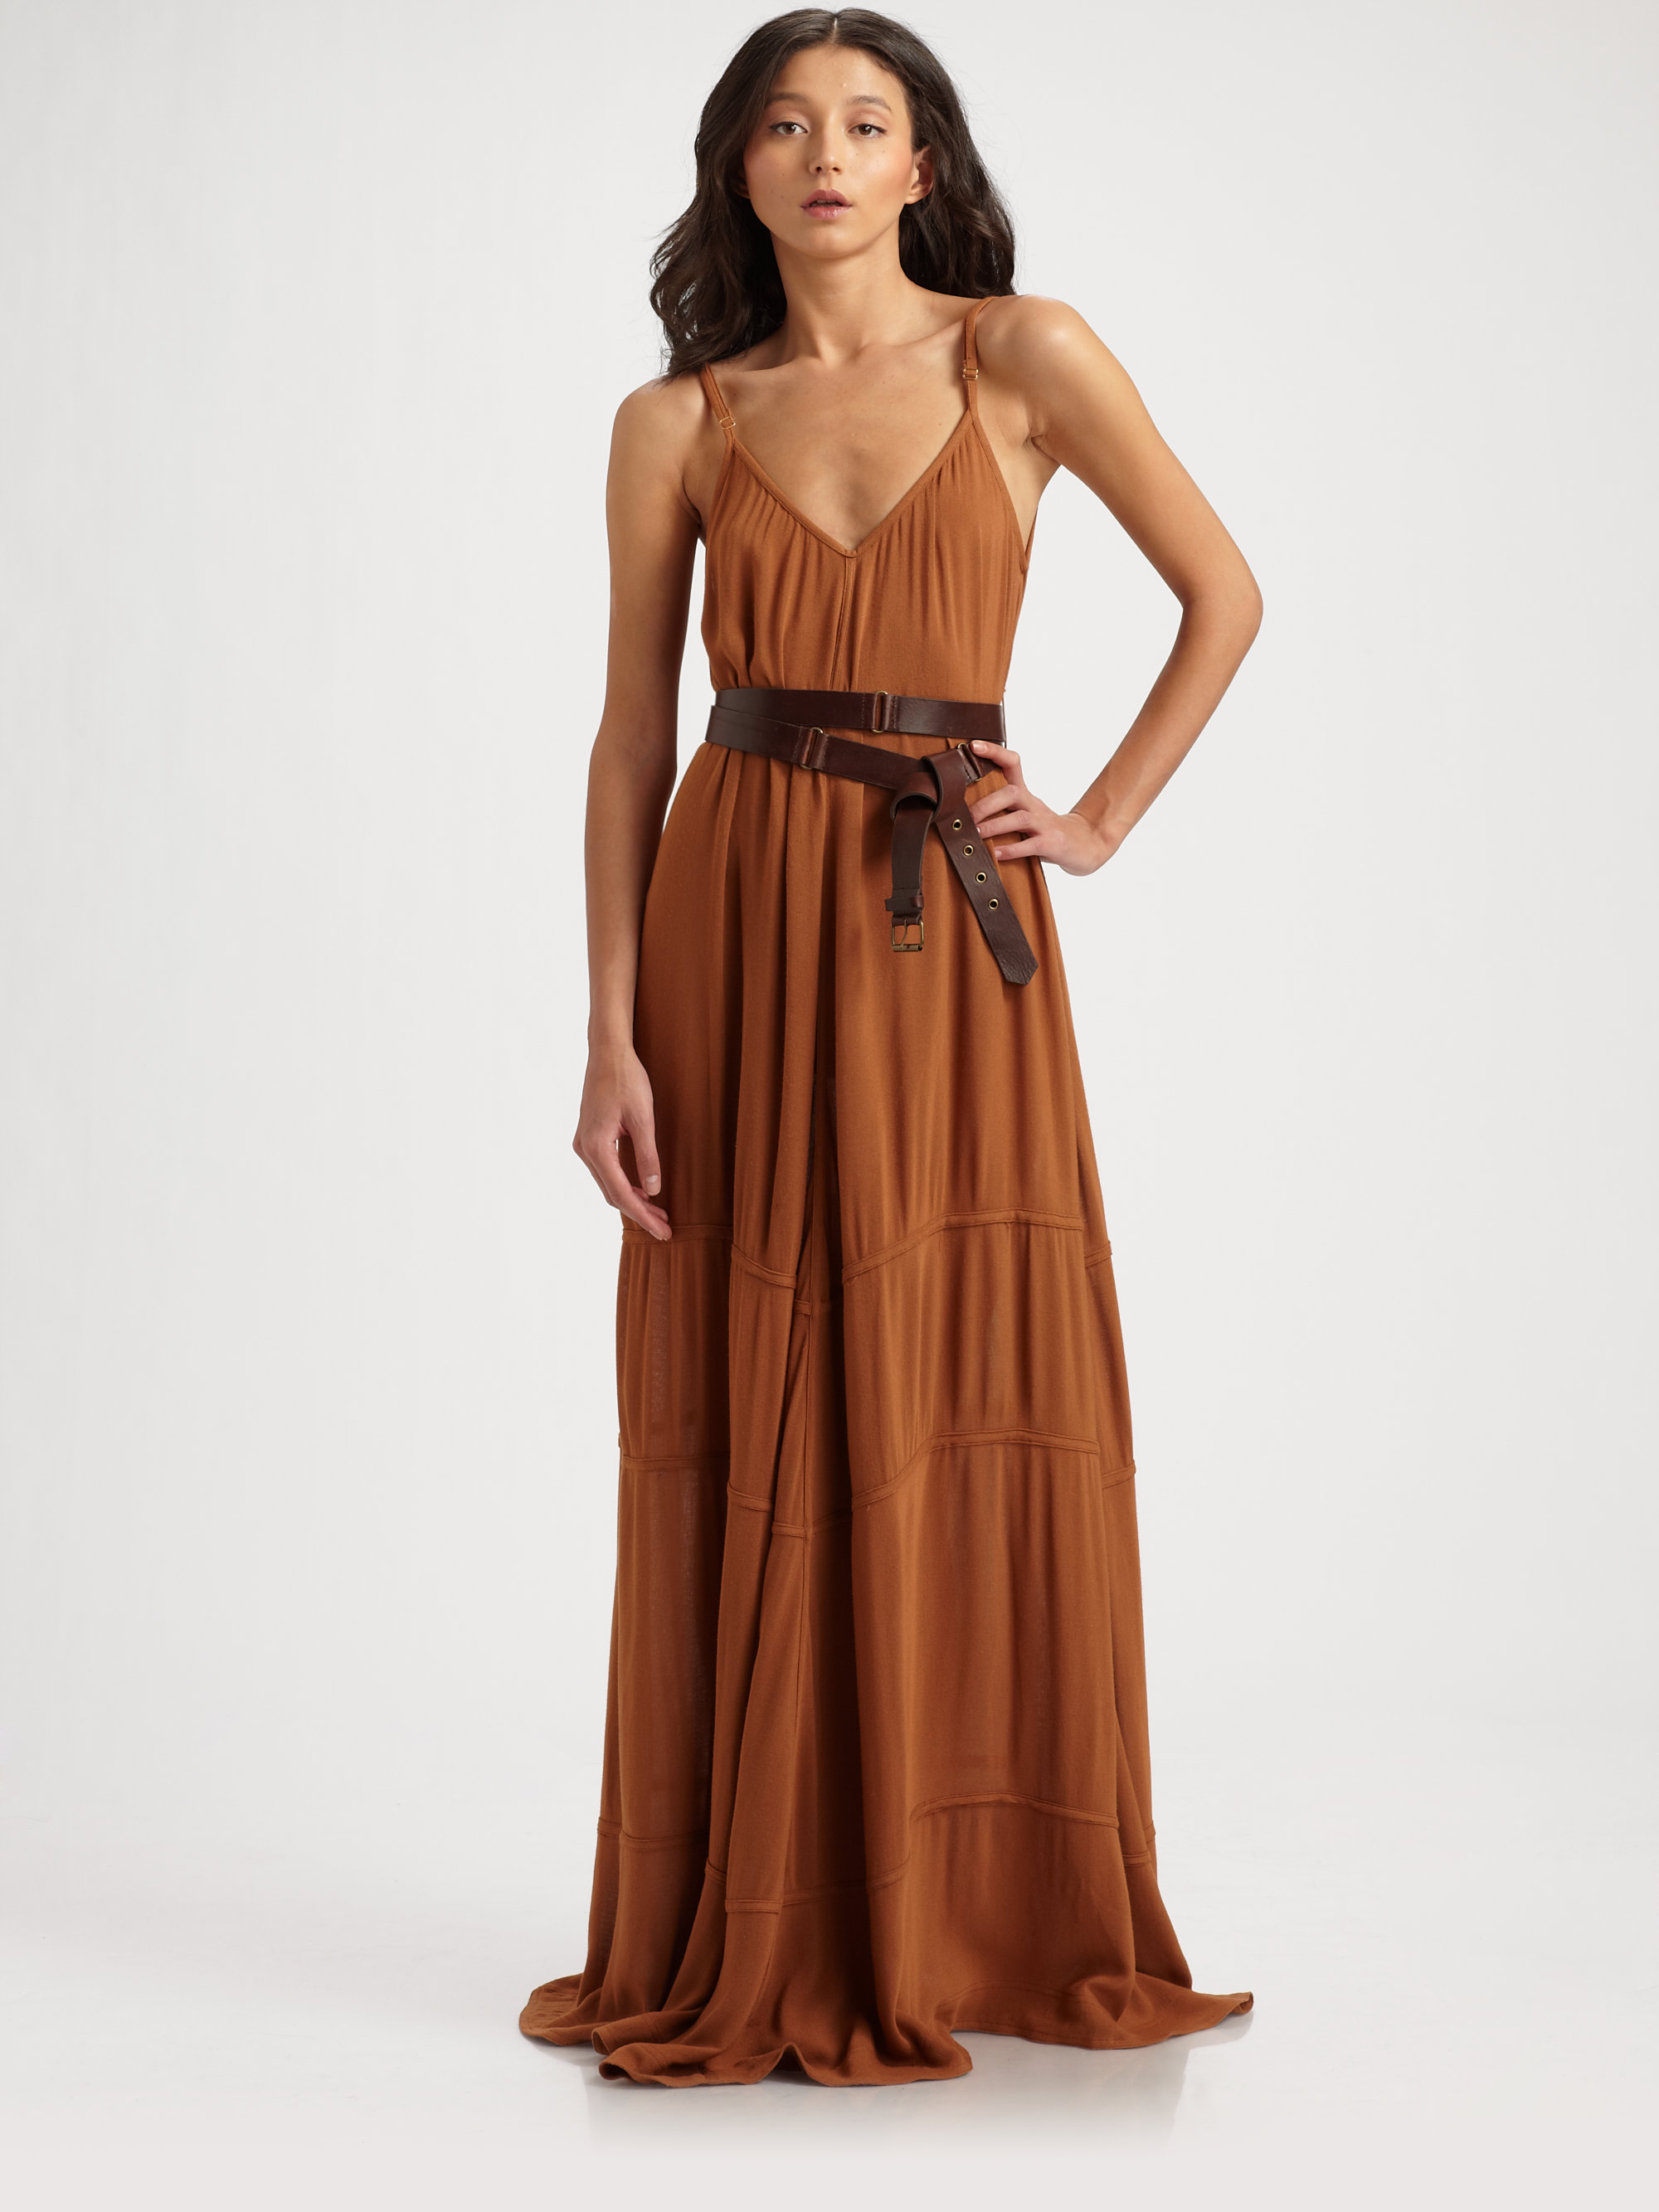 Camilla & marc Day Break Belted Maxi Dress in Brown | Lyst